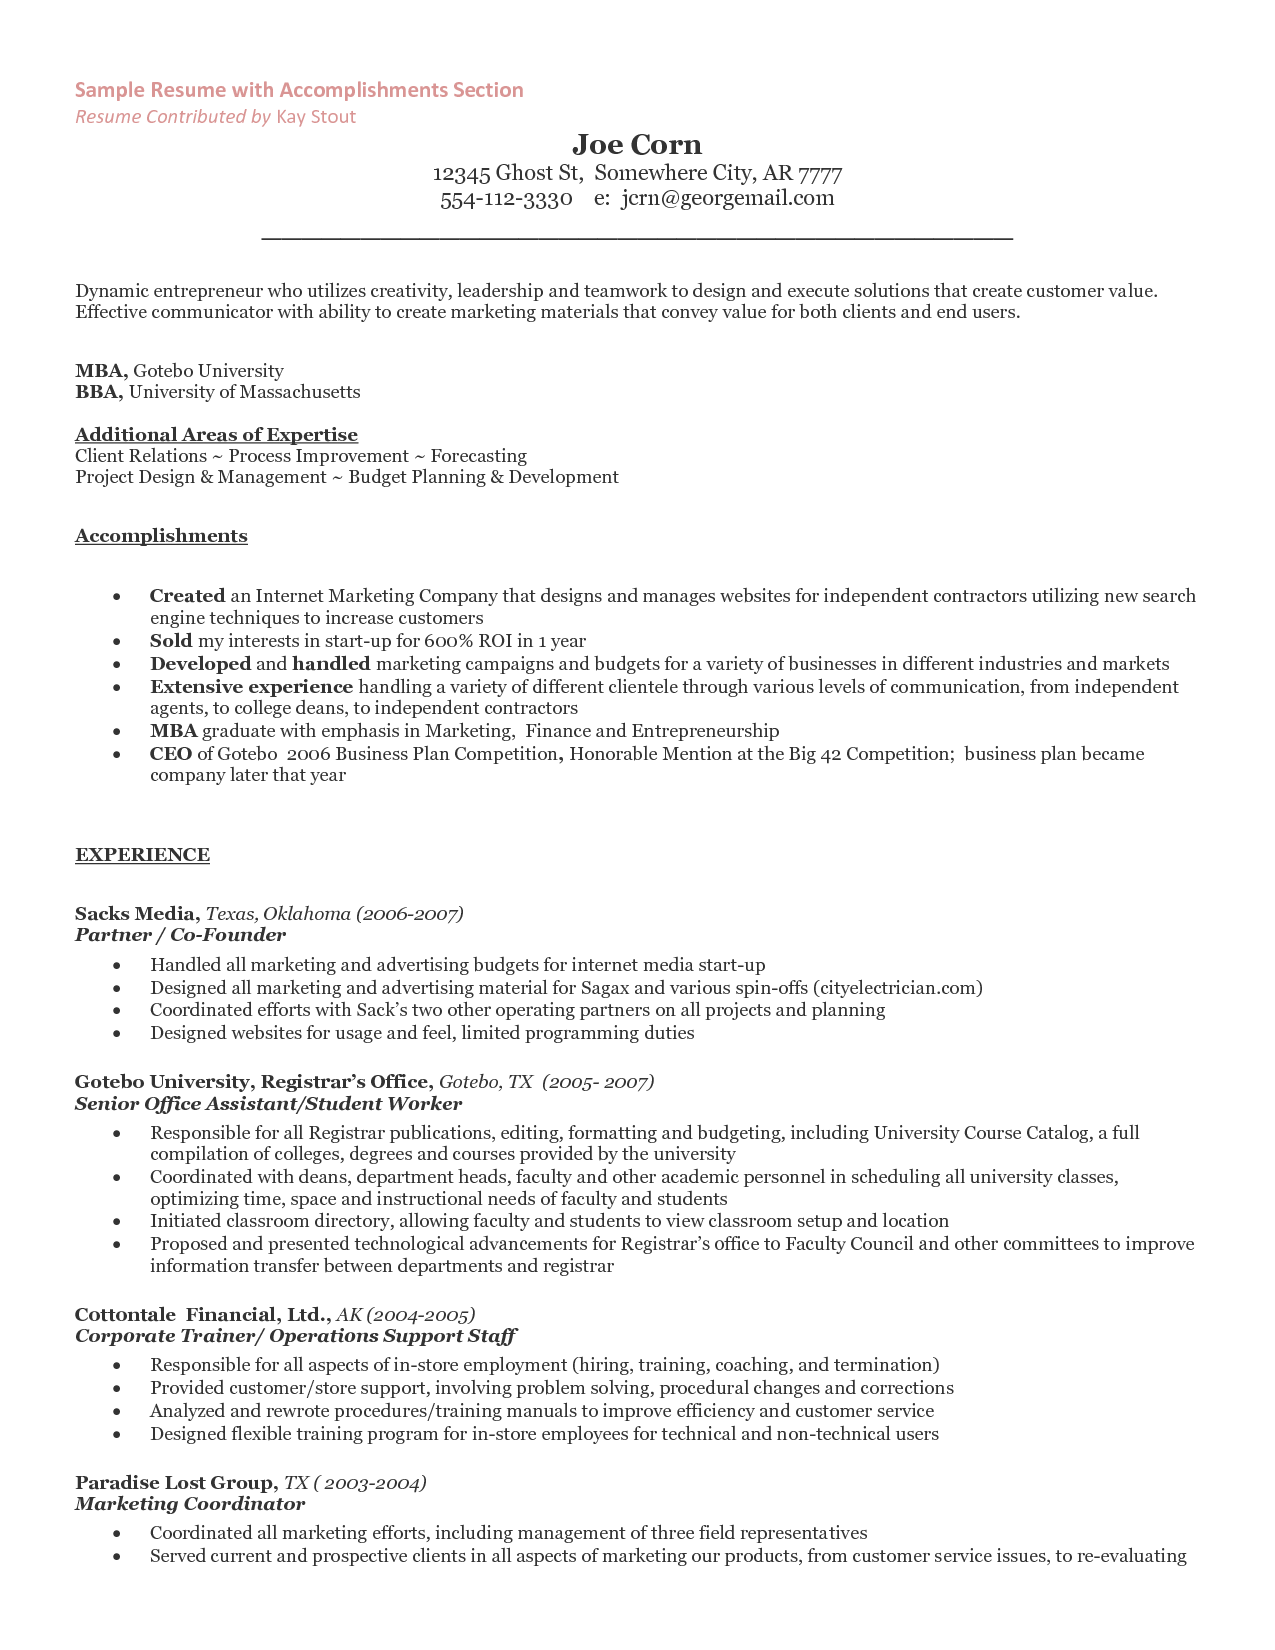 The Entrepreneur Resume And Cover Letter What Should You Include